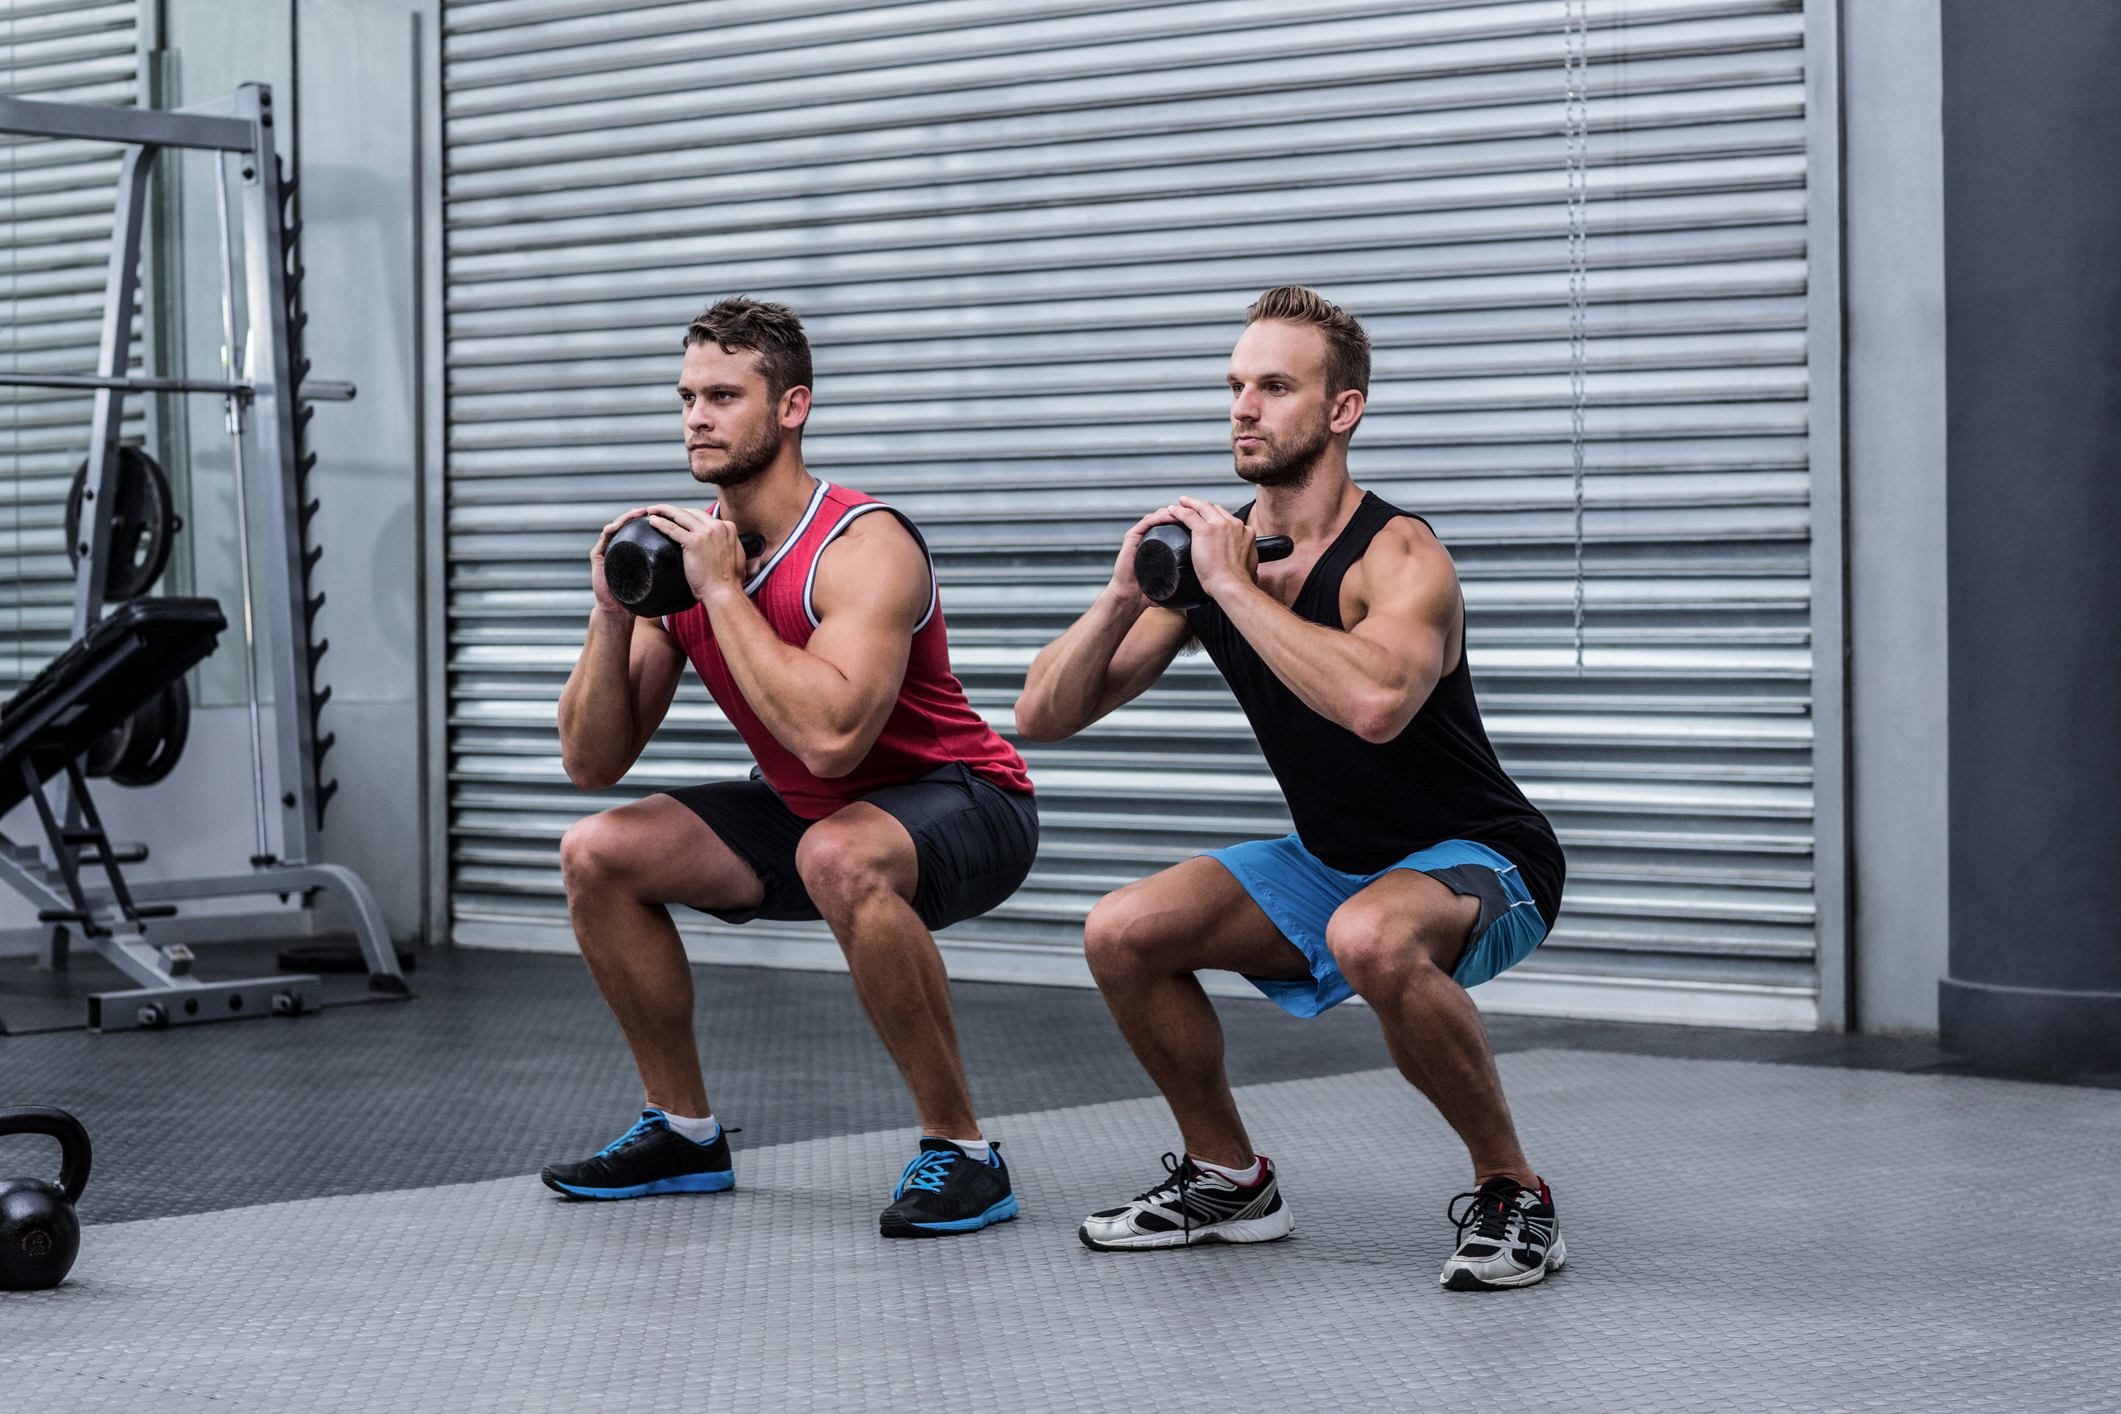 Corrective Exercise - Prescribed exercises that are individualized to each client and injury to improve flexibility, strength, balance, and coordination. Corrective exercise are the gateway to long term relief and movement retraining.